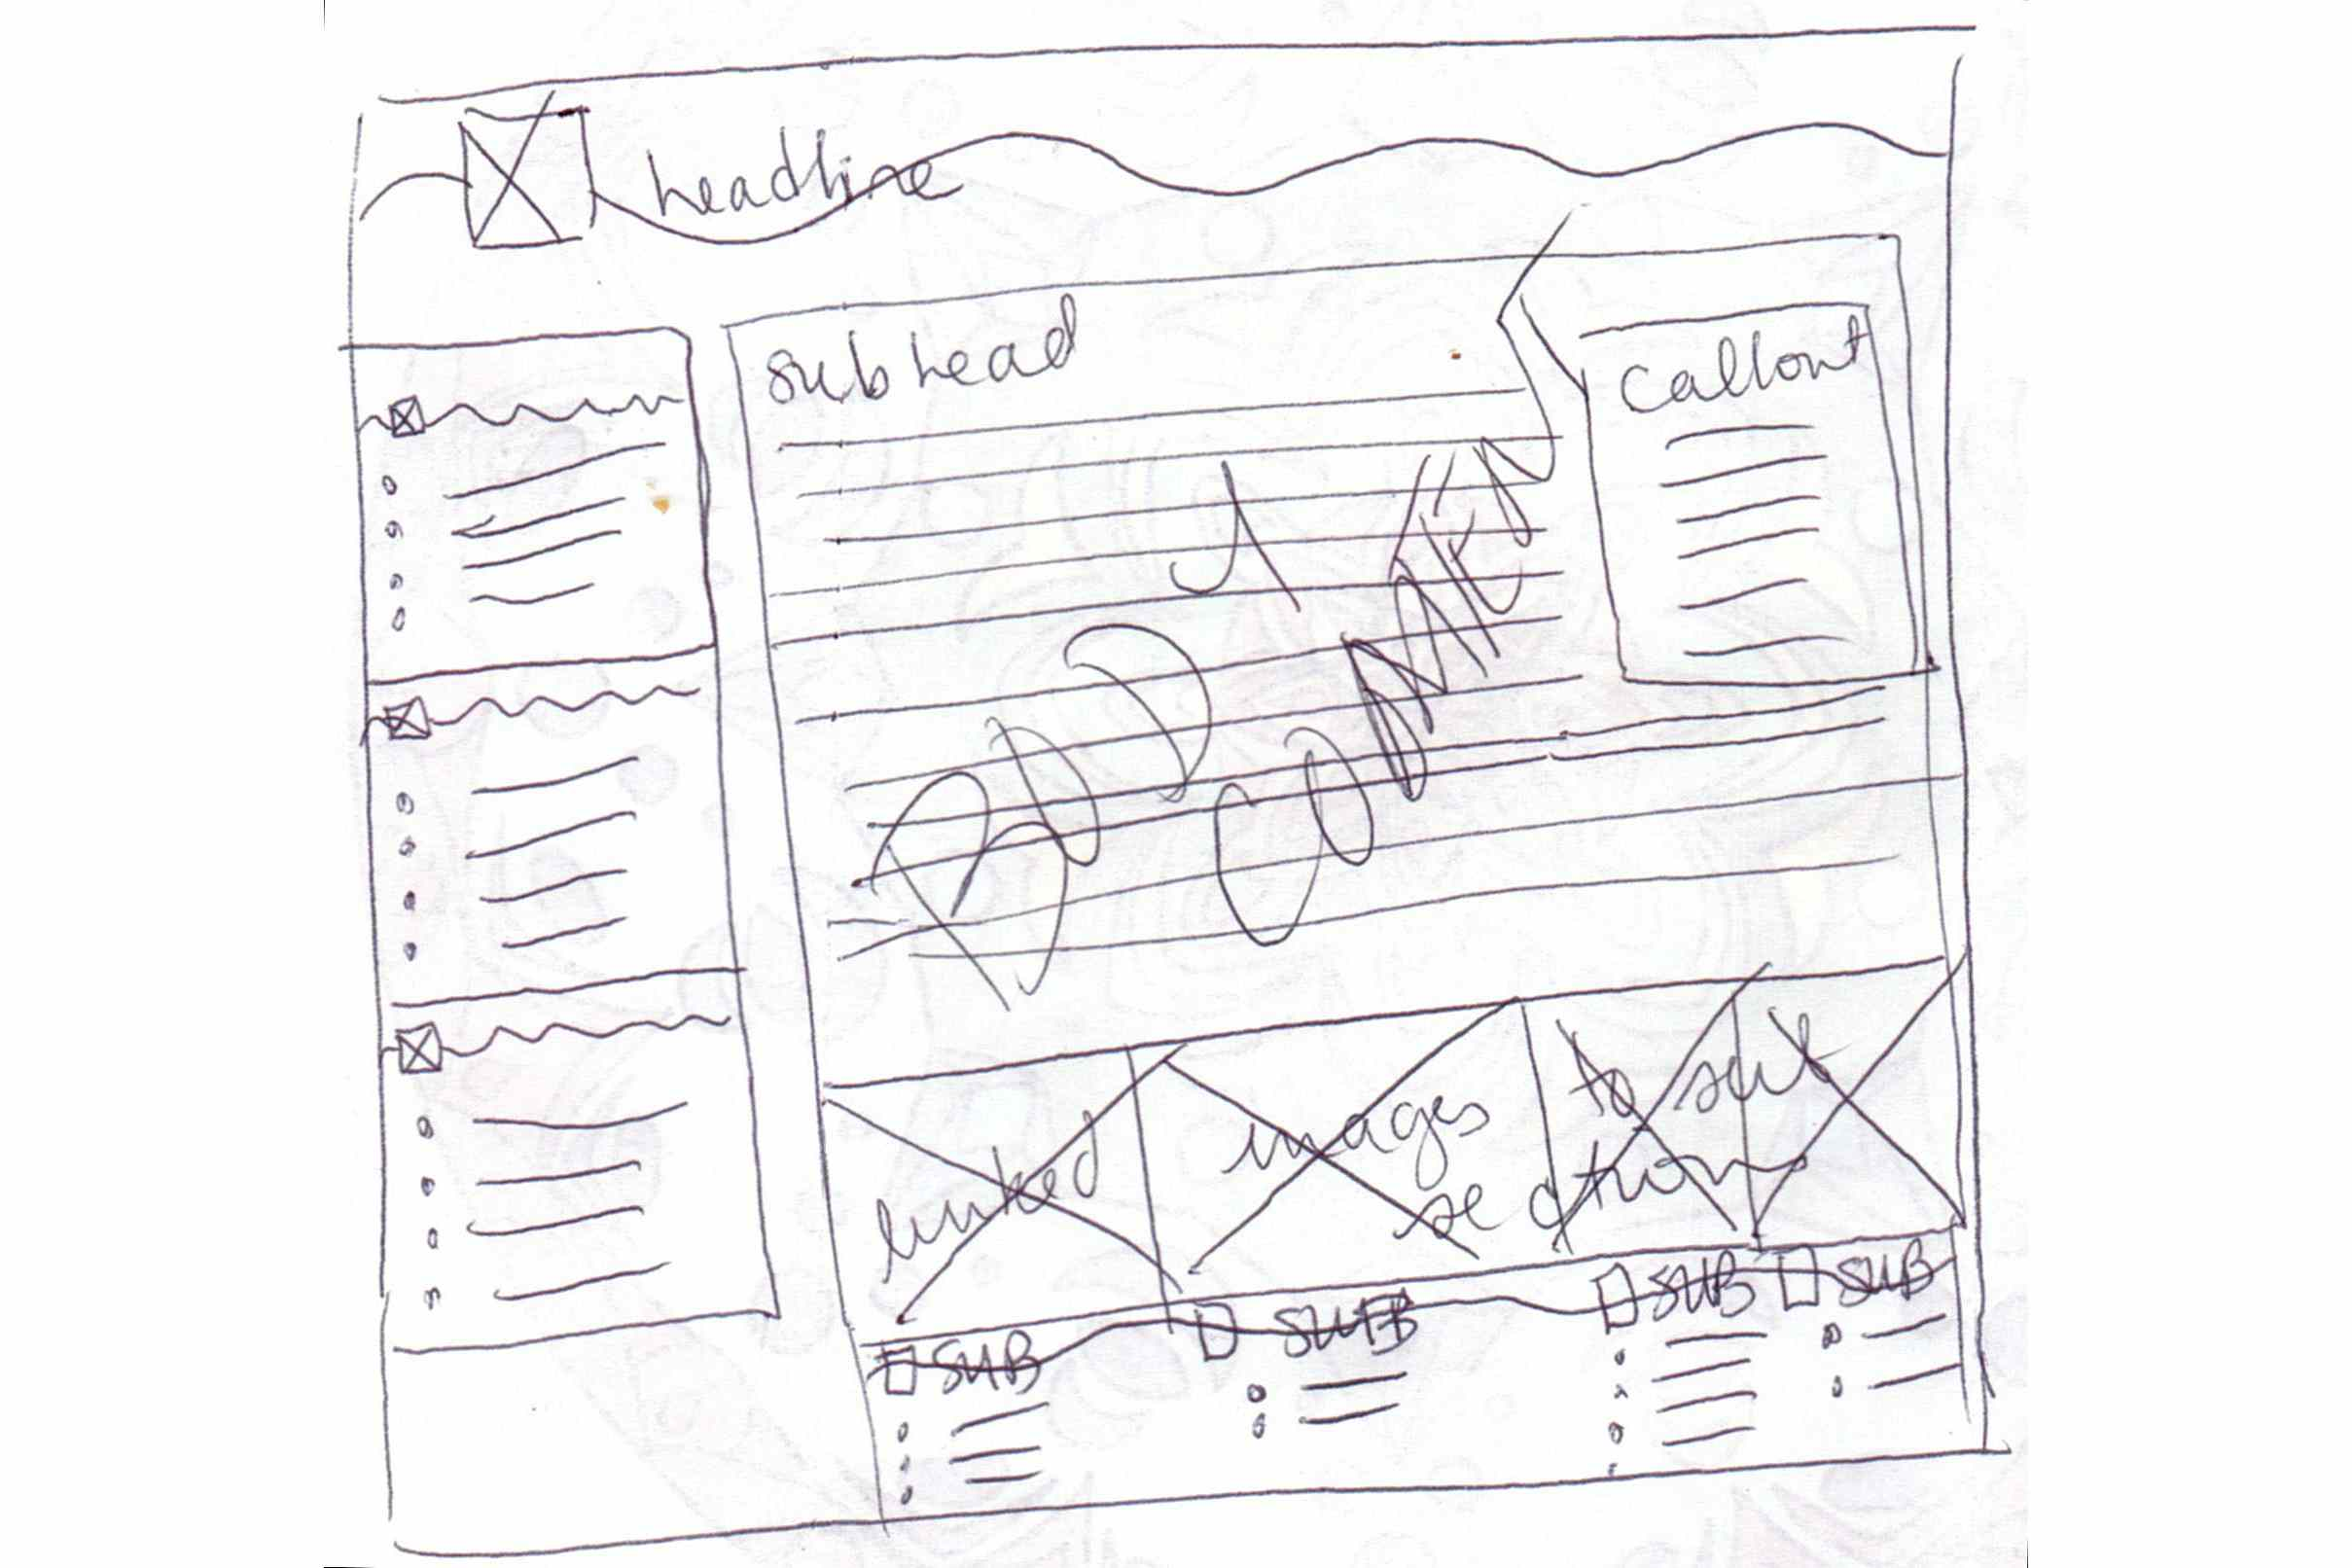 Simple paper wireframe